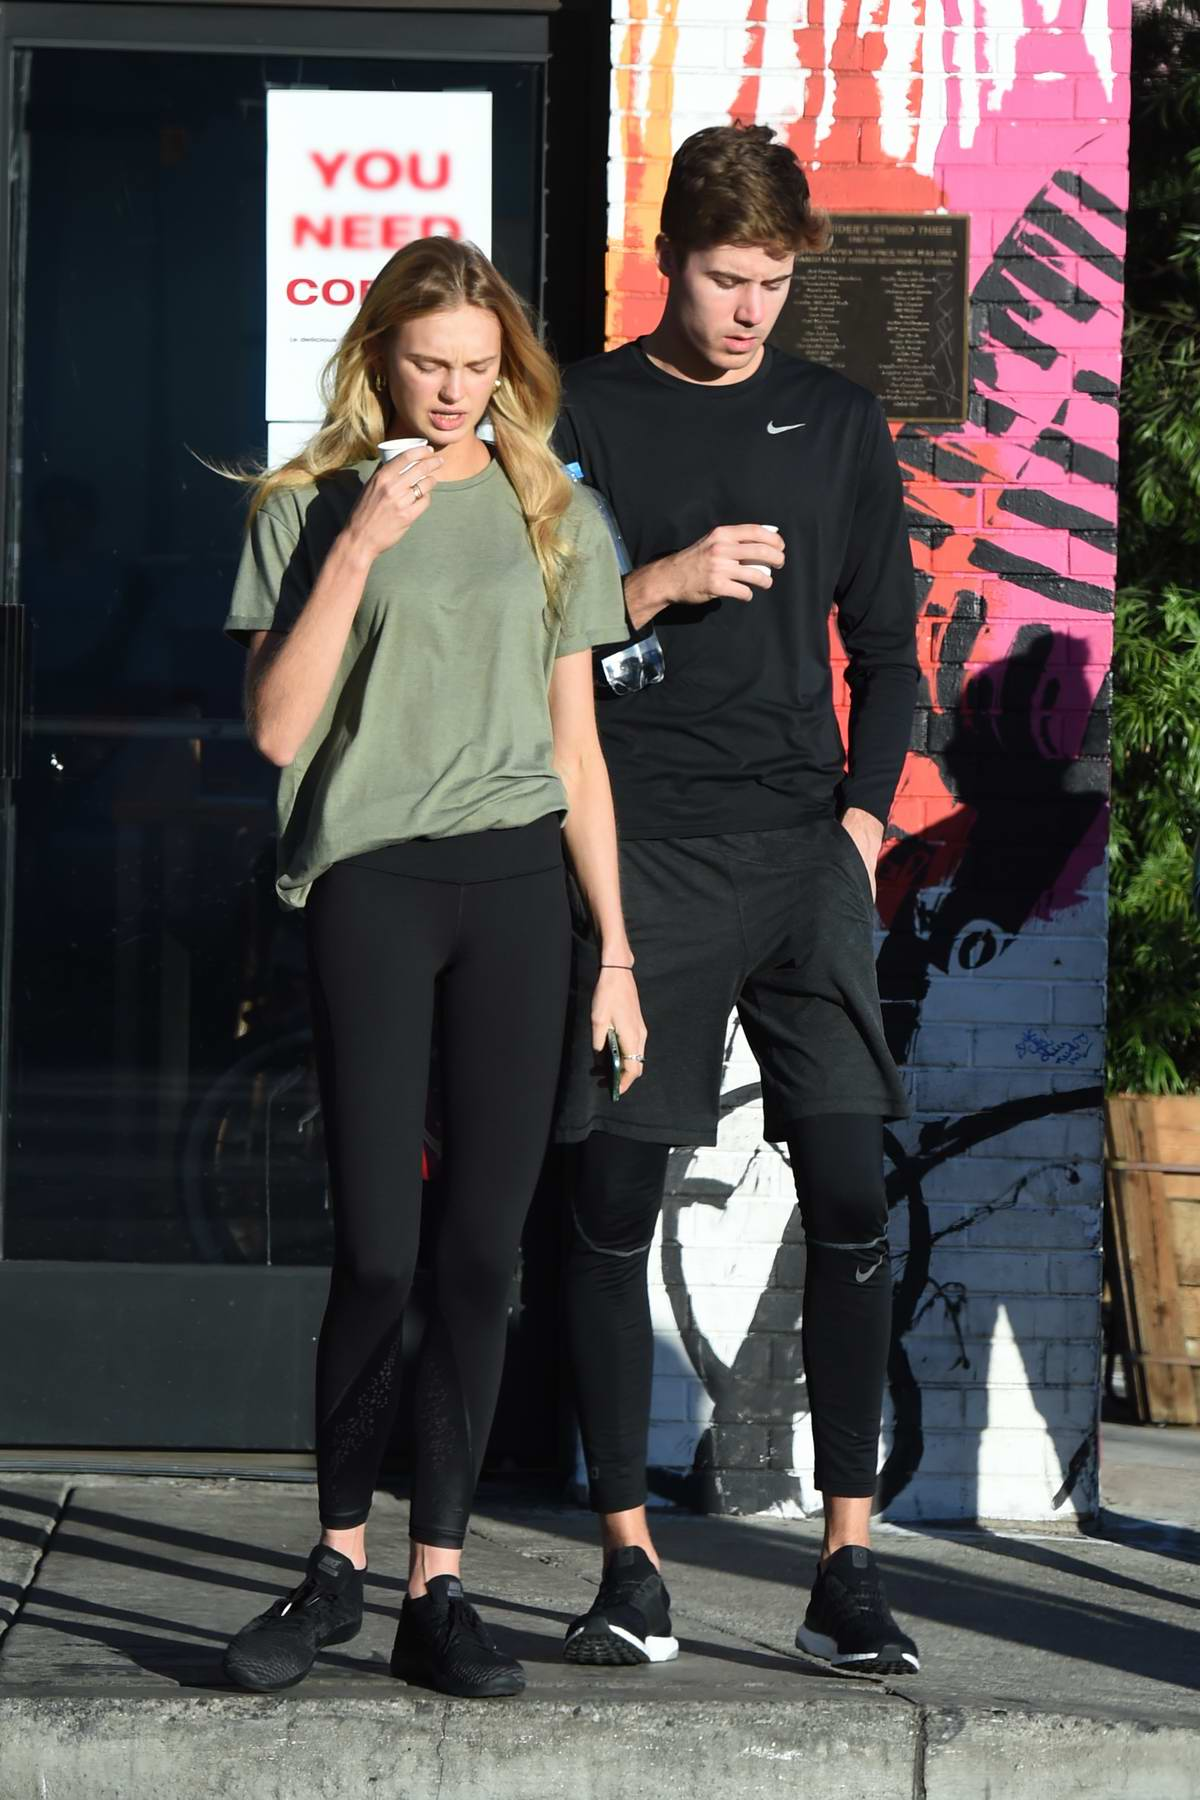 Romee Strijd and boyfriend Laurens van Leeuwen take a shot of healthy juice as they head to the gym for a workout in Los Angeles